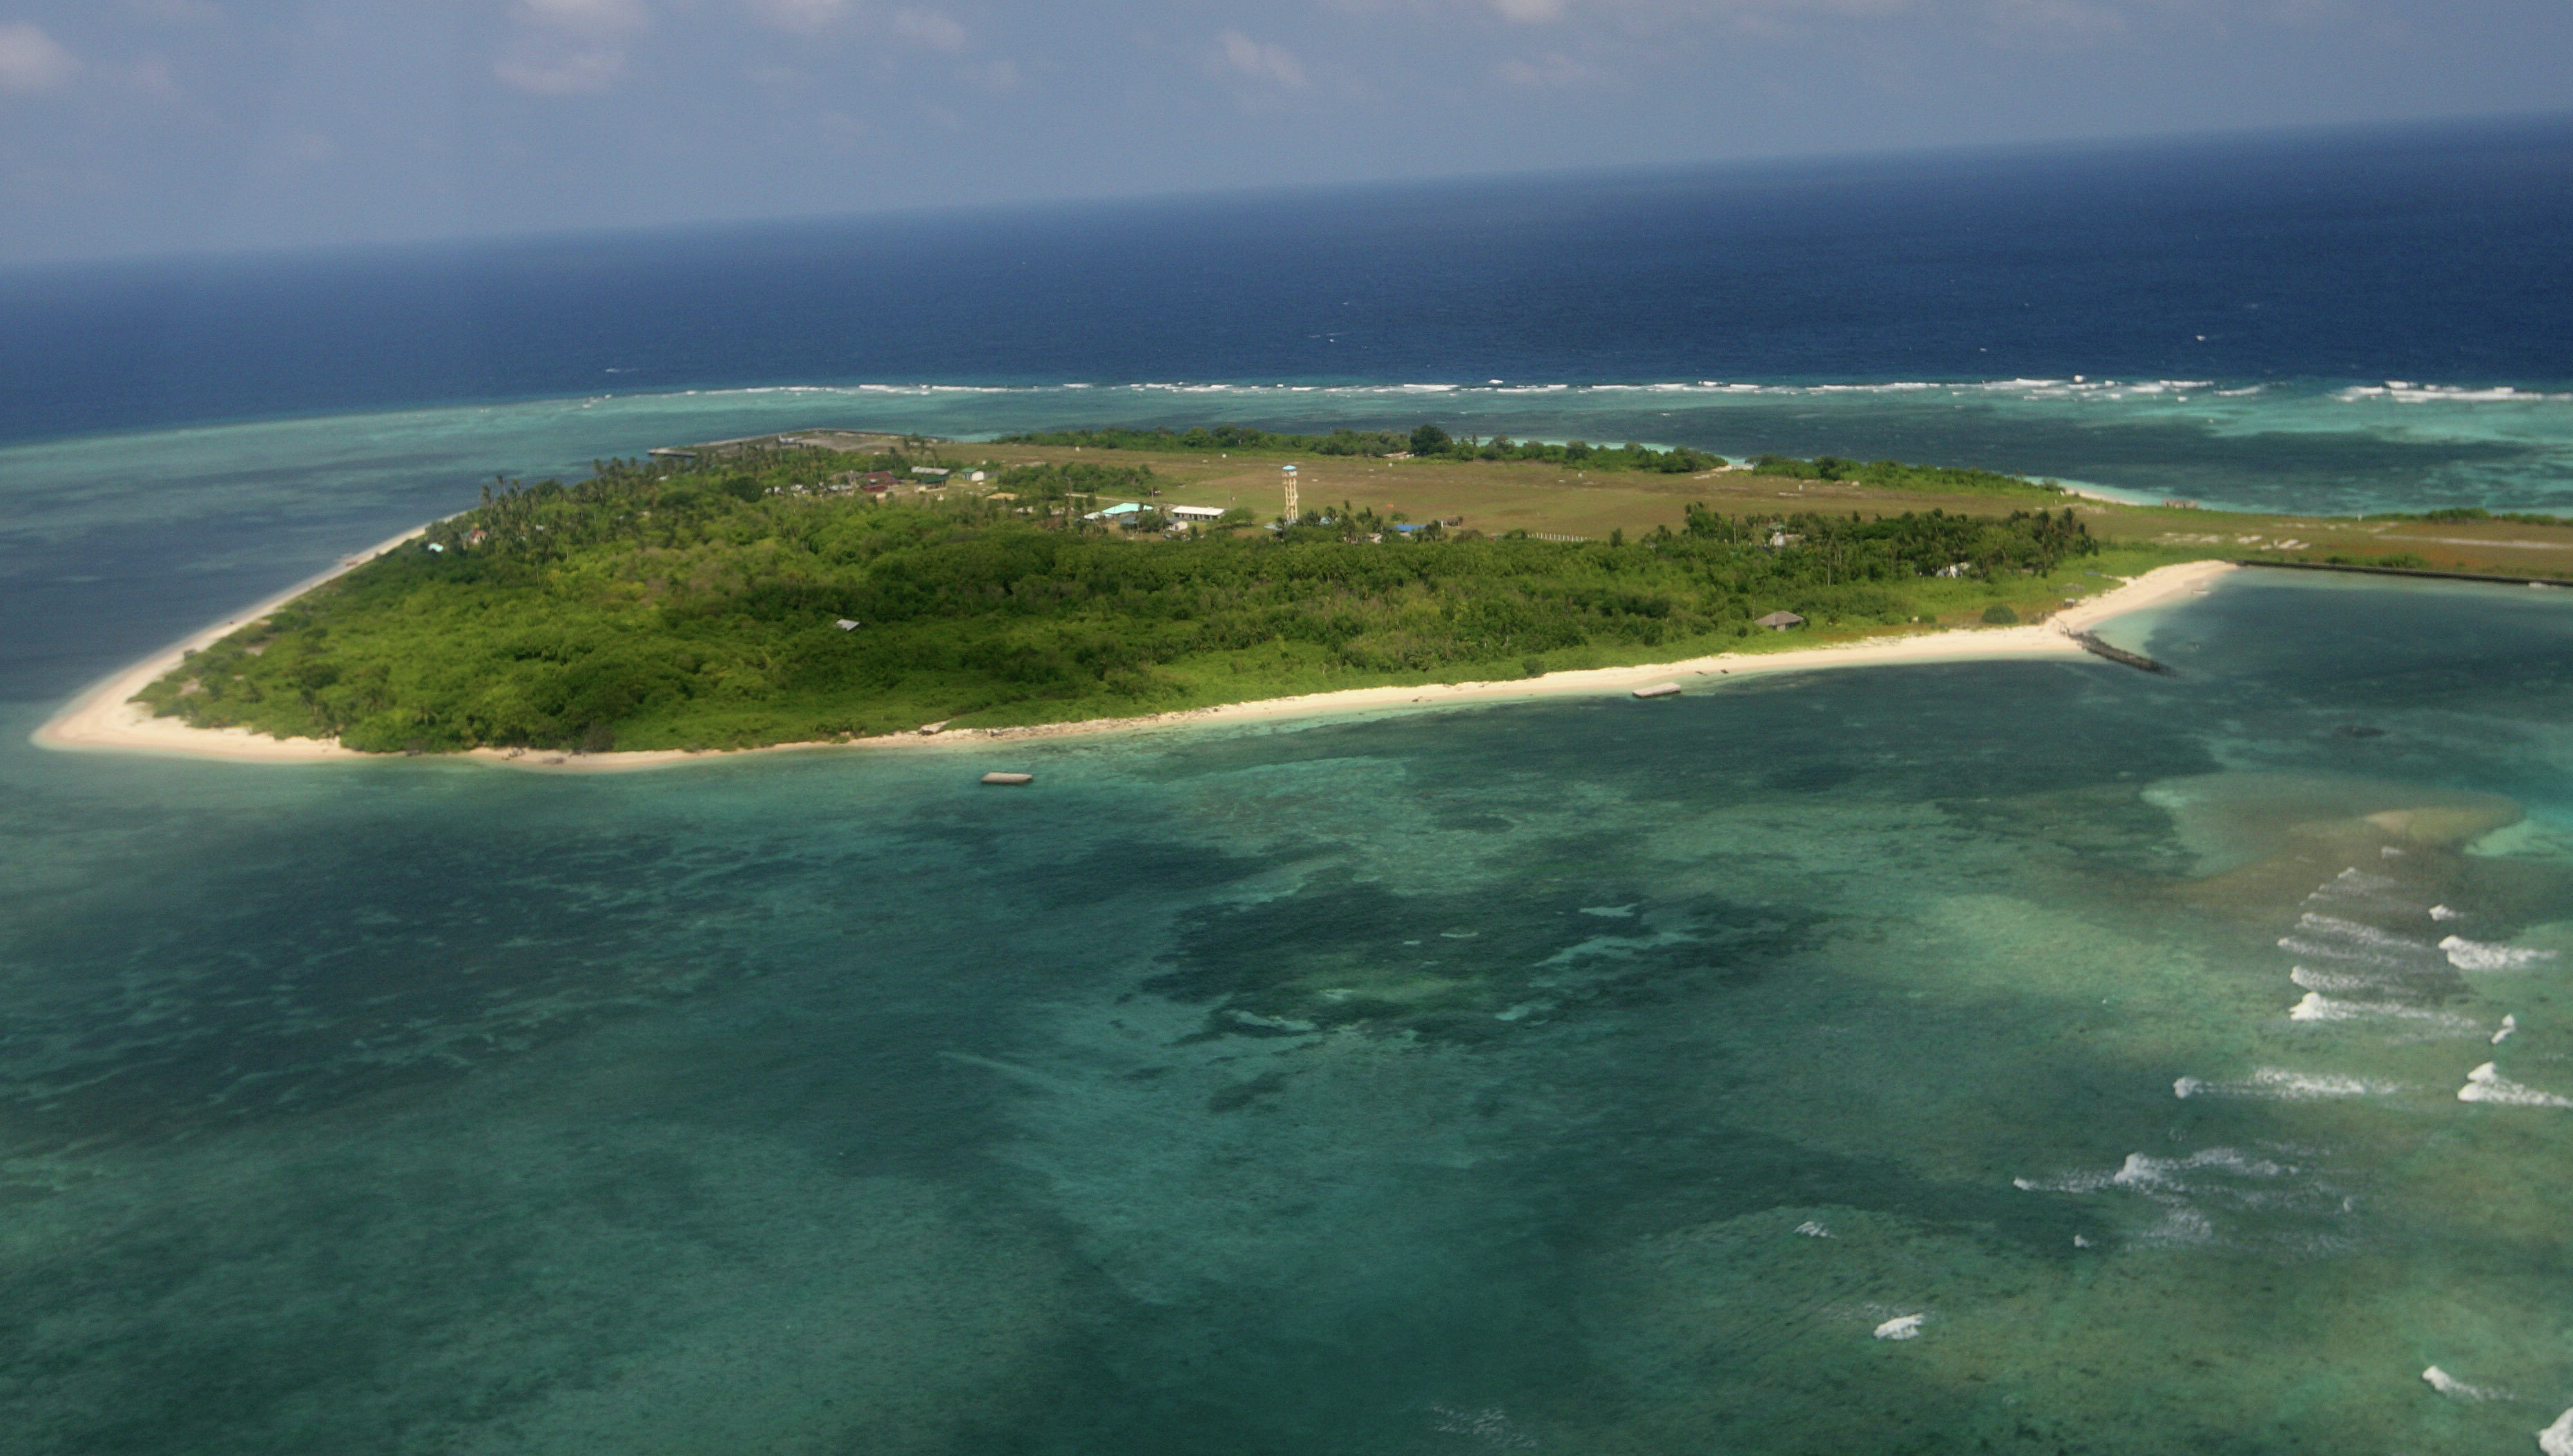 An aerial photo shows Thitu Island, part of the disputed Spratly group of islands, in the South China Sea located off the coast of western Philippines.